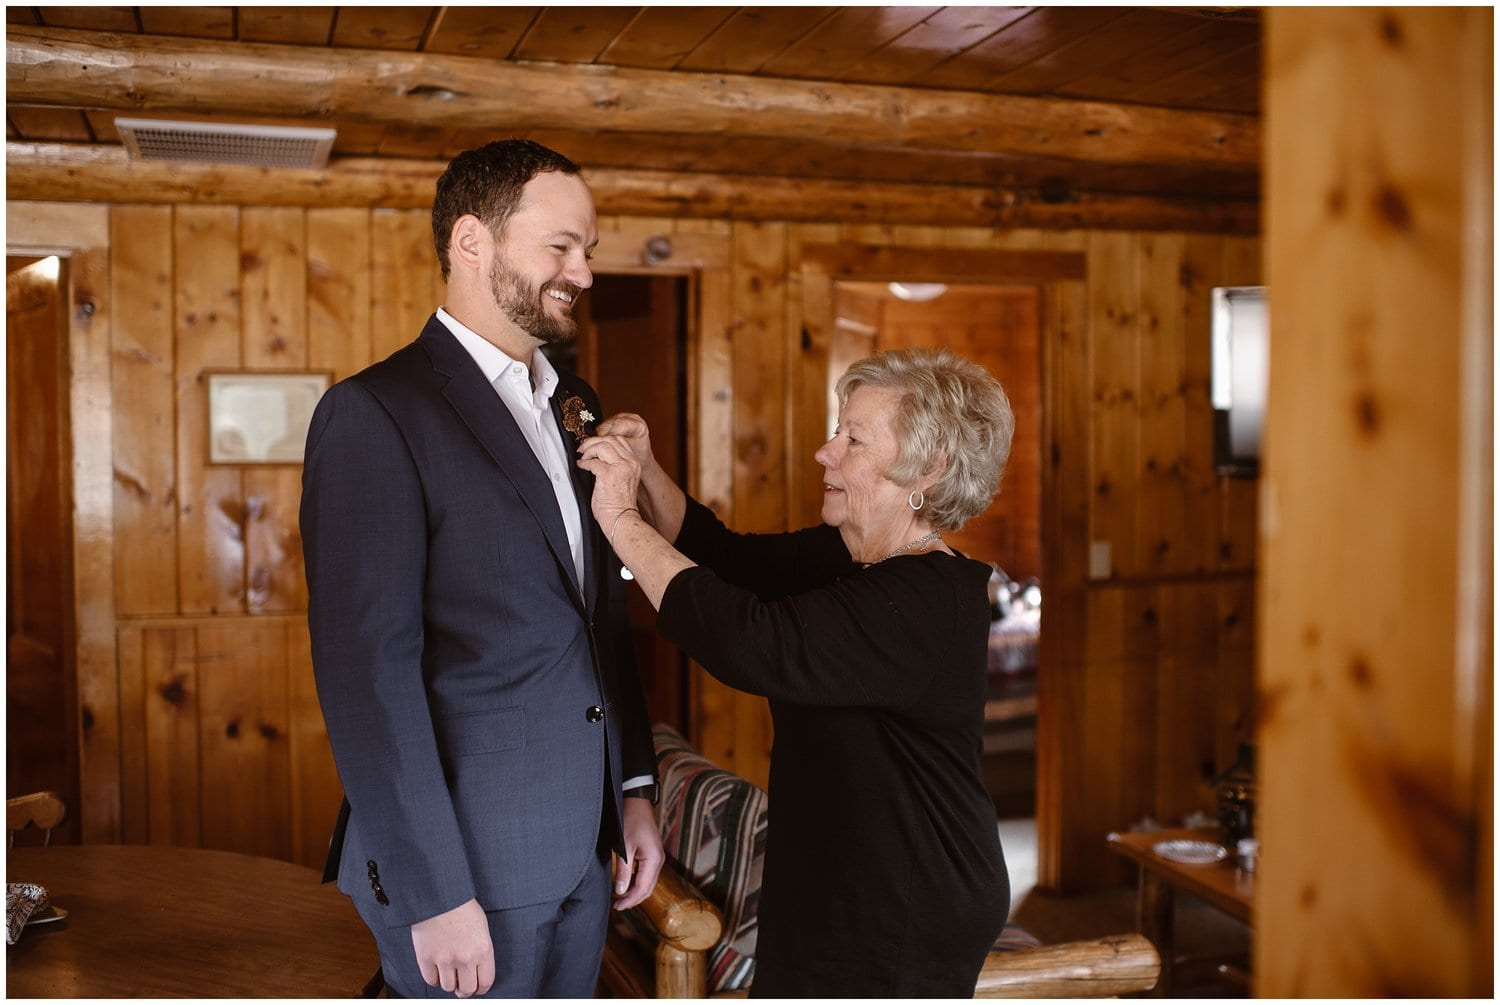 A groom smiles while a woman helps him pin a boutonnière on his jacket in a cabin.